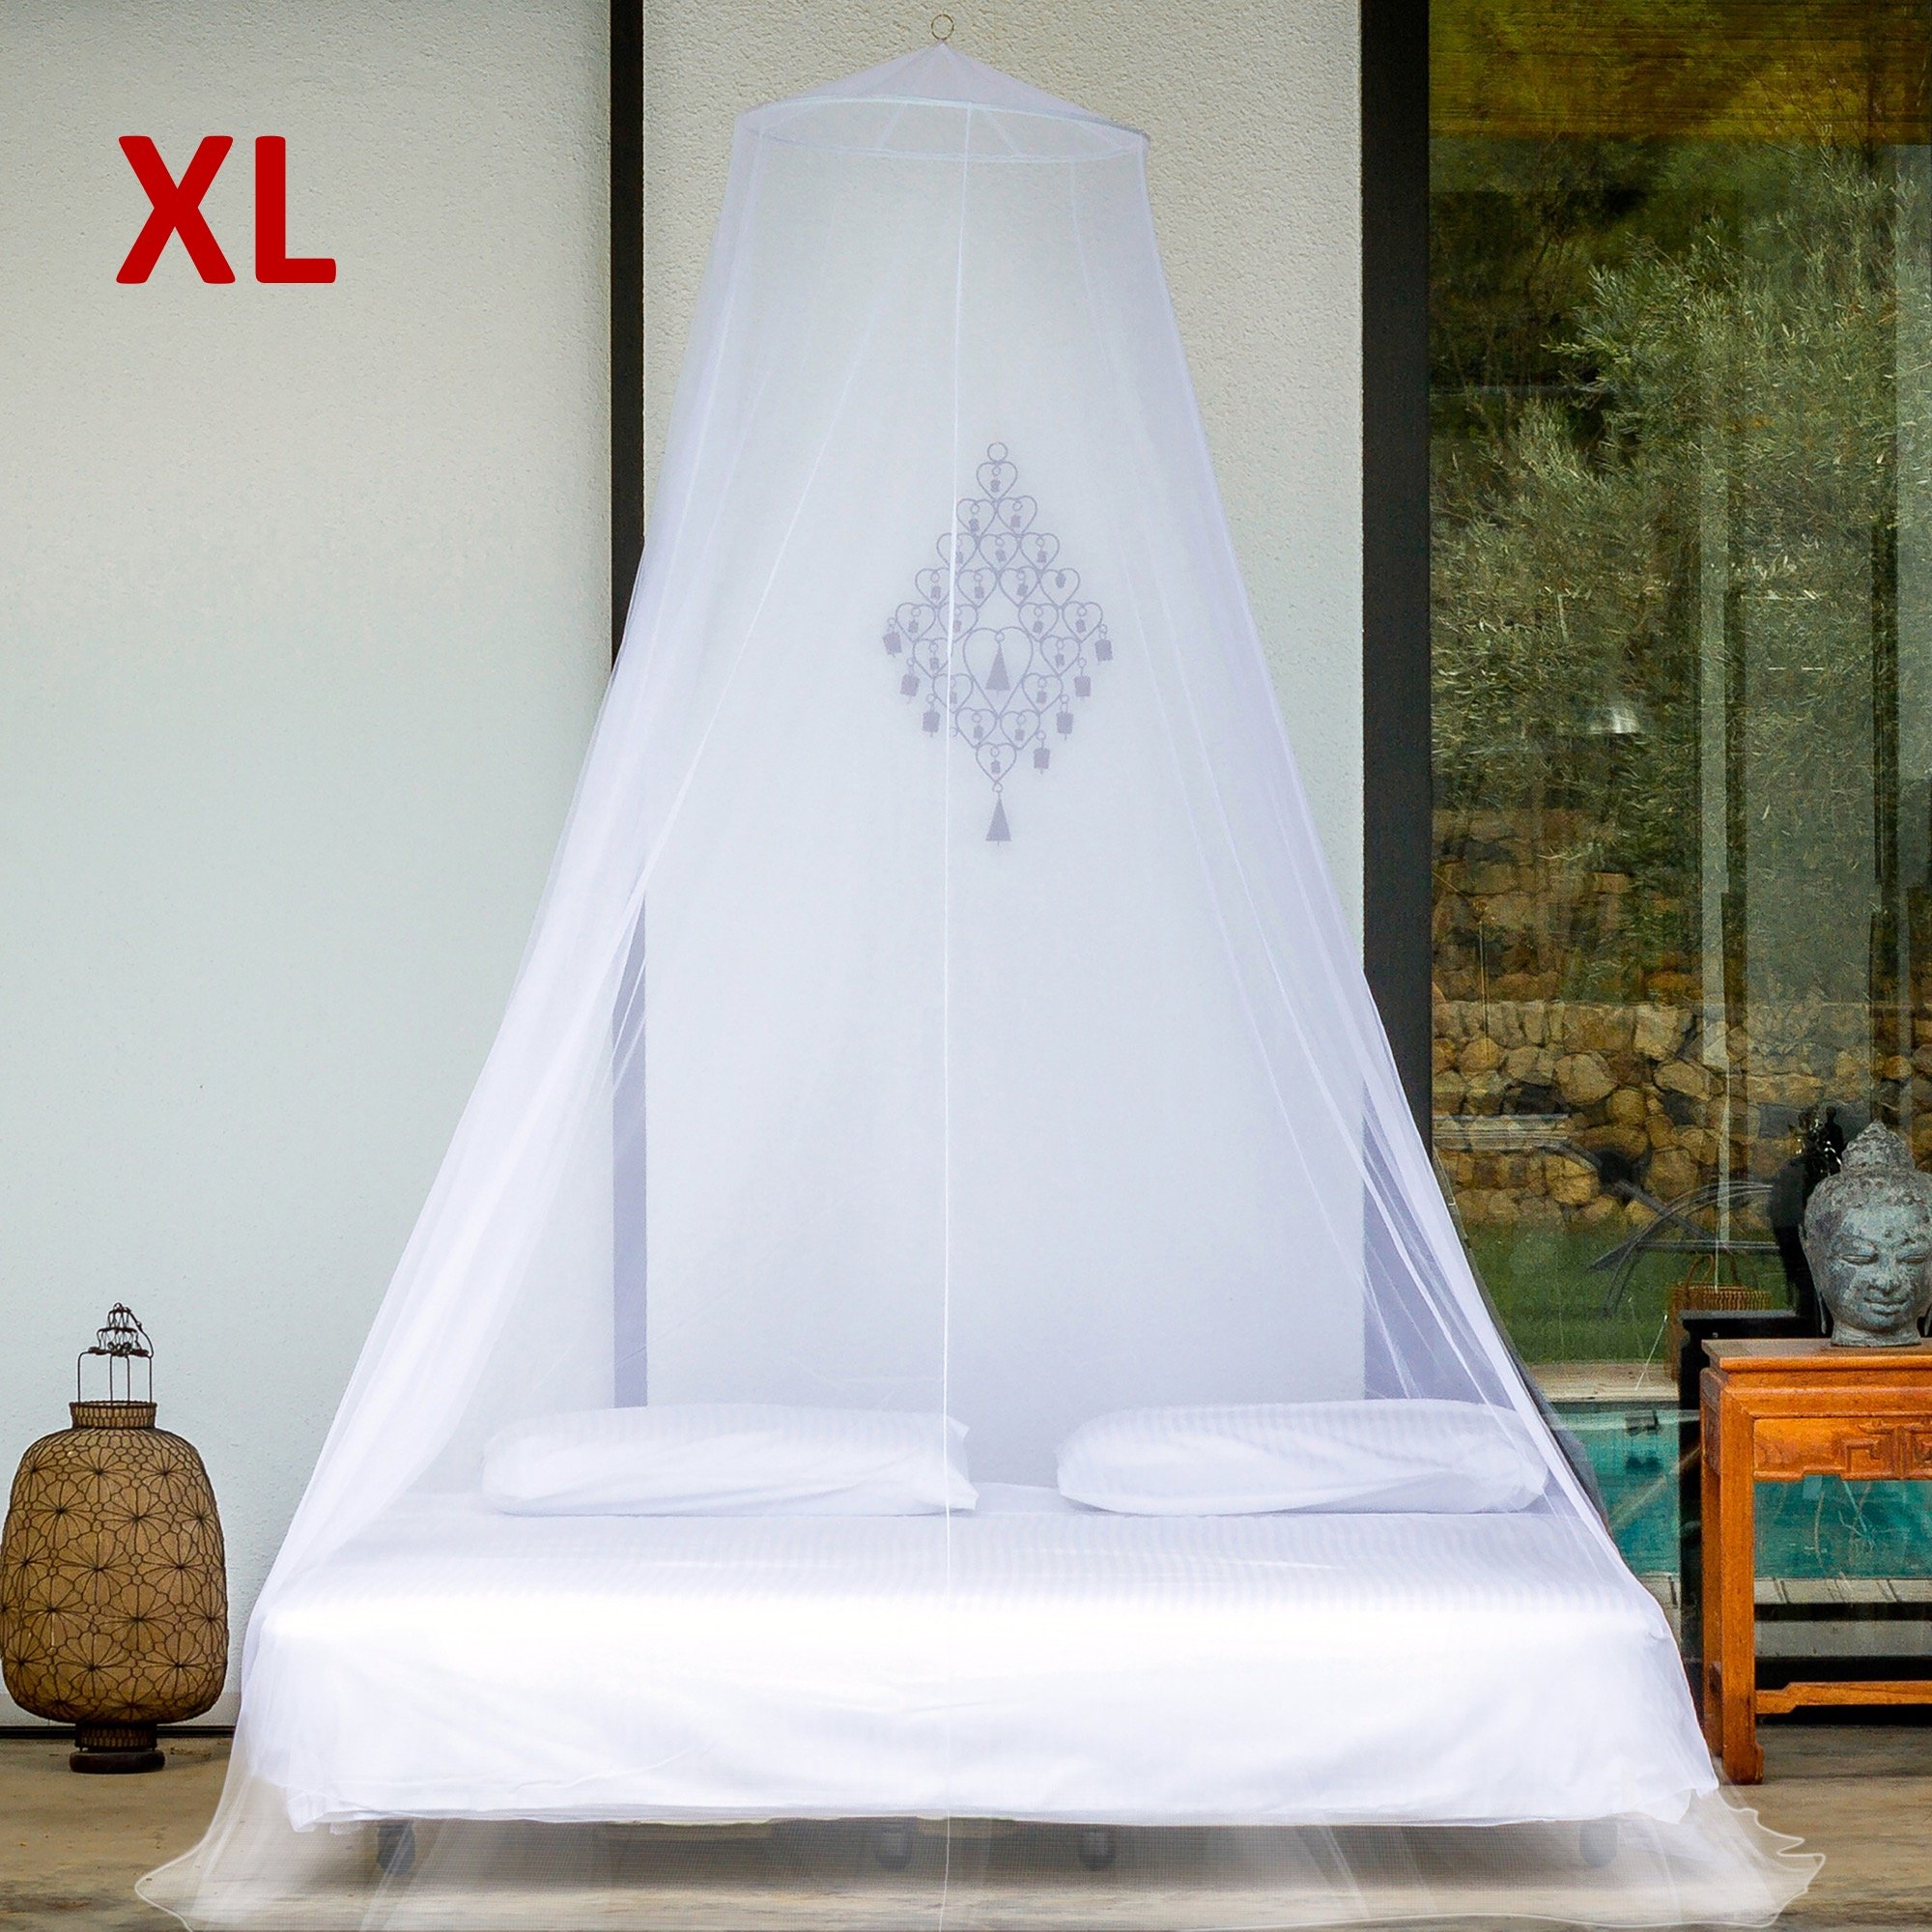 design add for curtains adults bedding drapes on canopy apartment bedroom decorative diy excellent bed